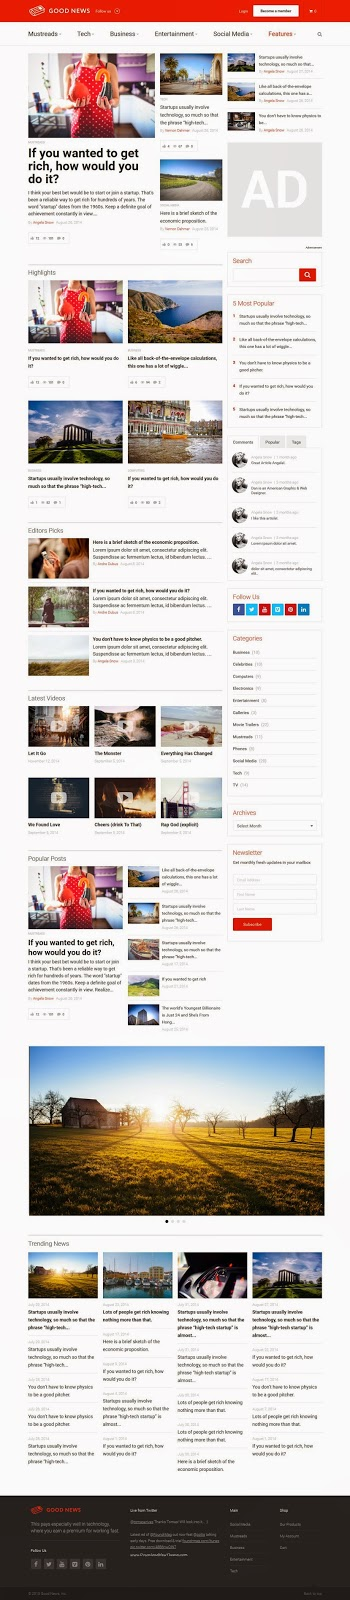 Free Responsive News Magazine Blog WP Theme 2015